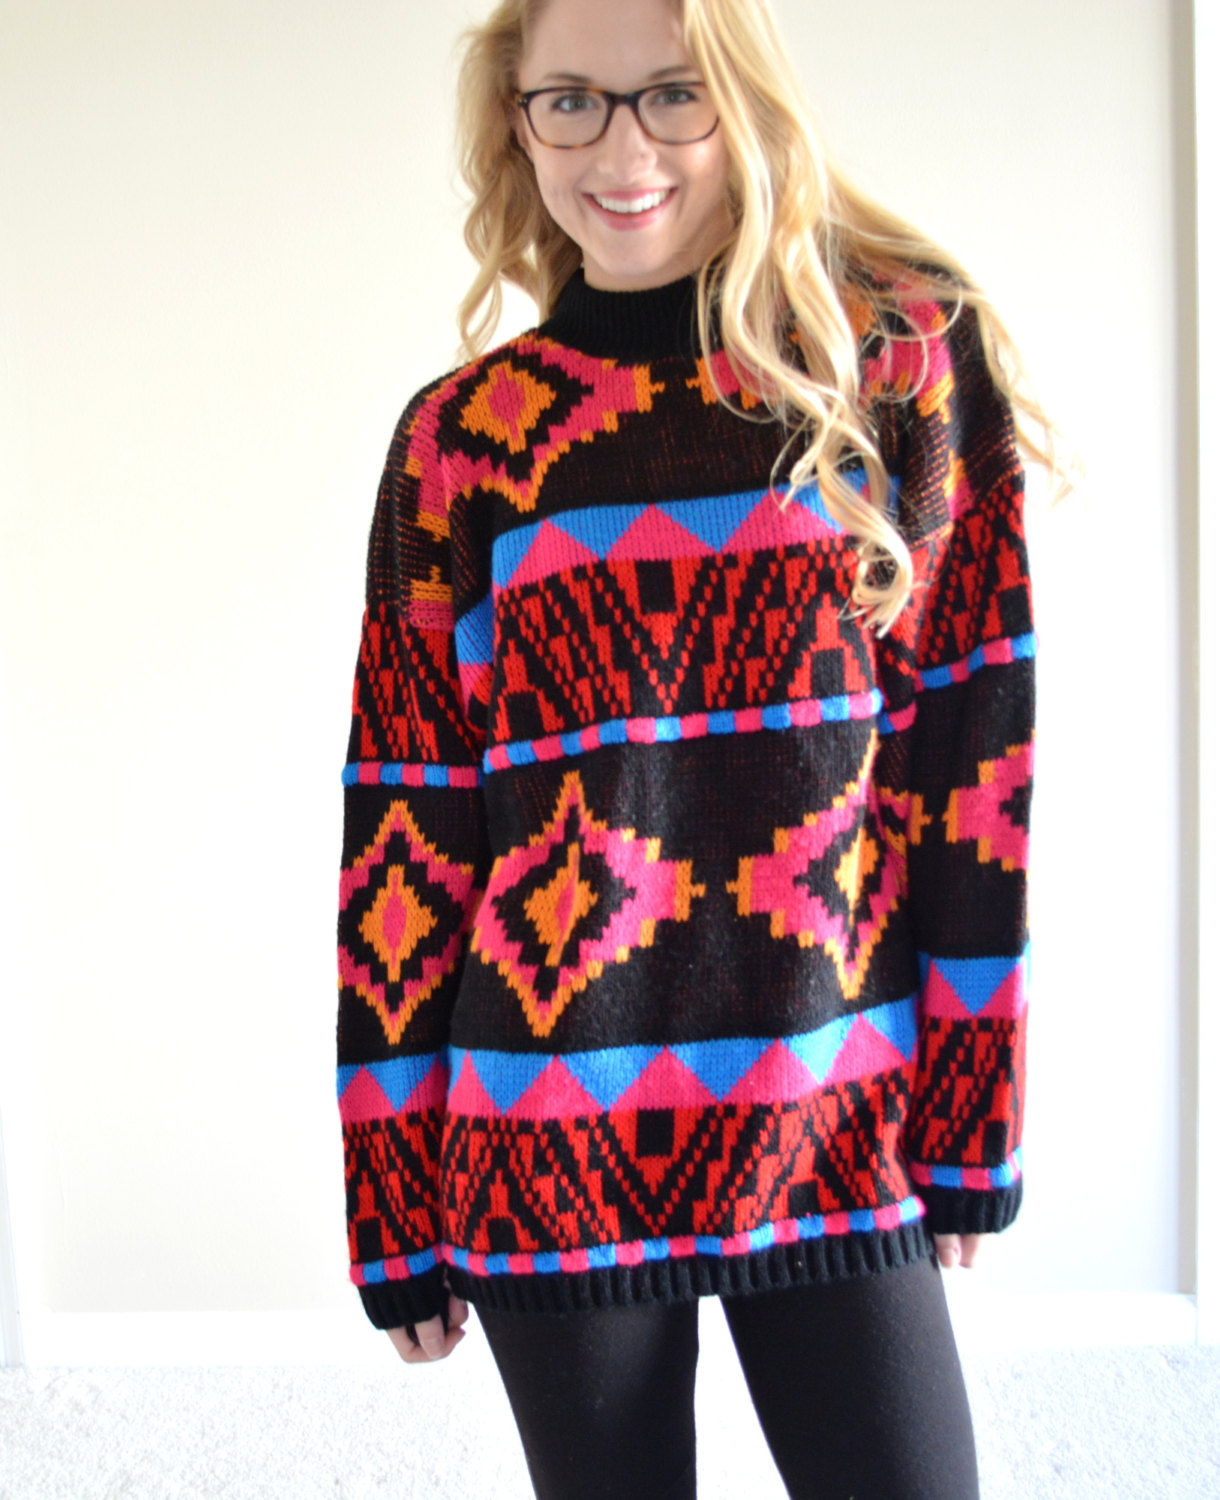 Find great deals on eBay for womens aztec sweater. Shop with confidence.